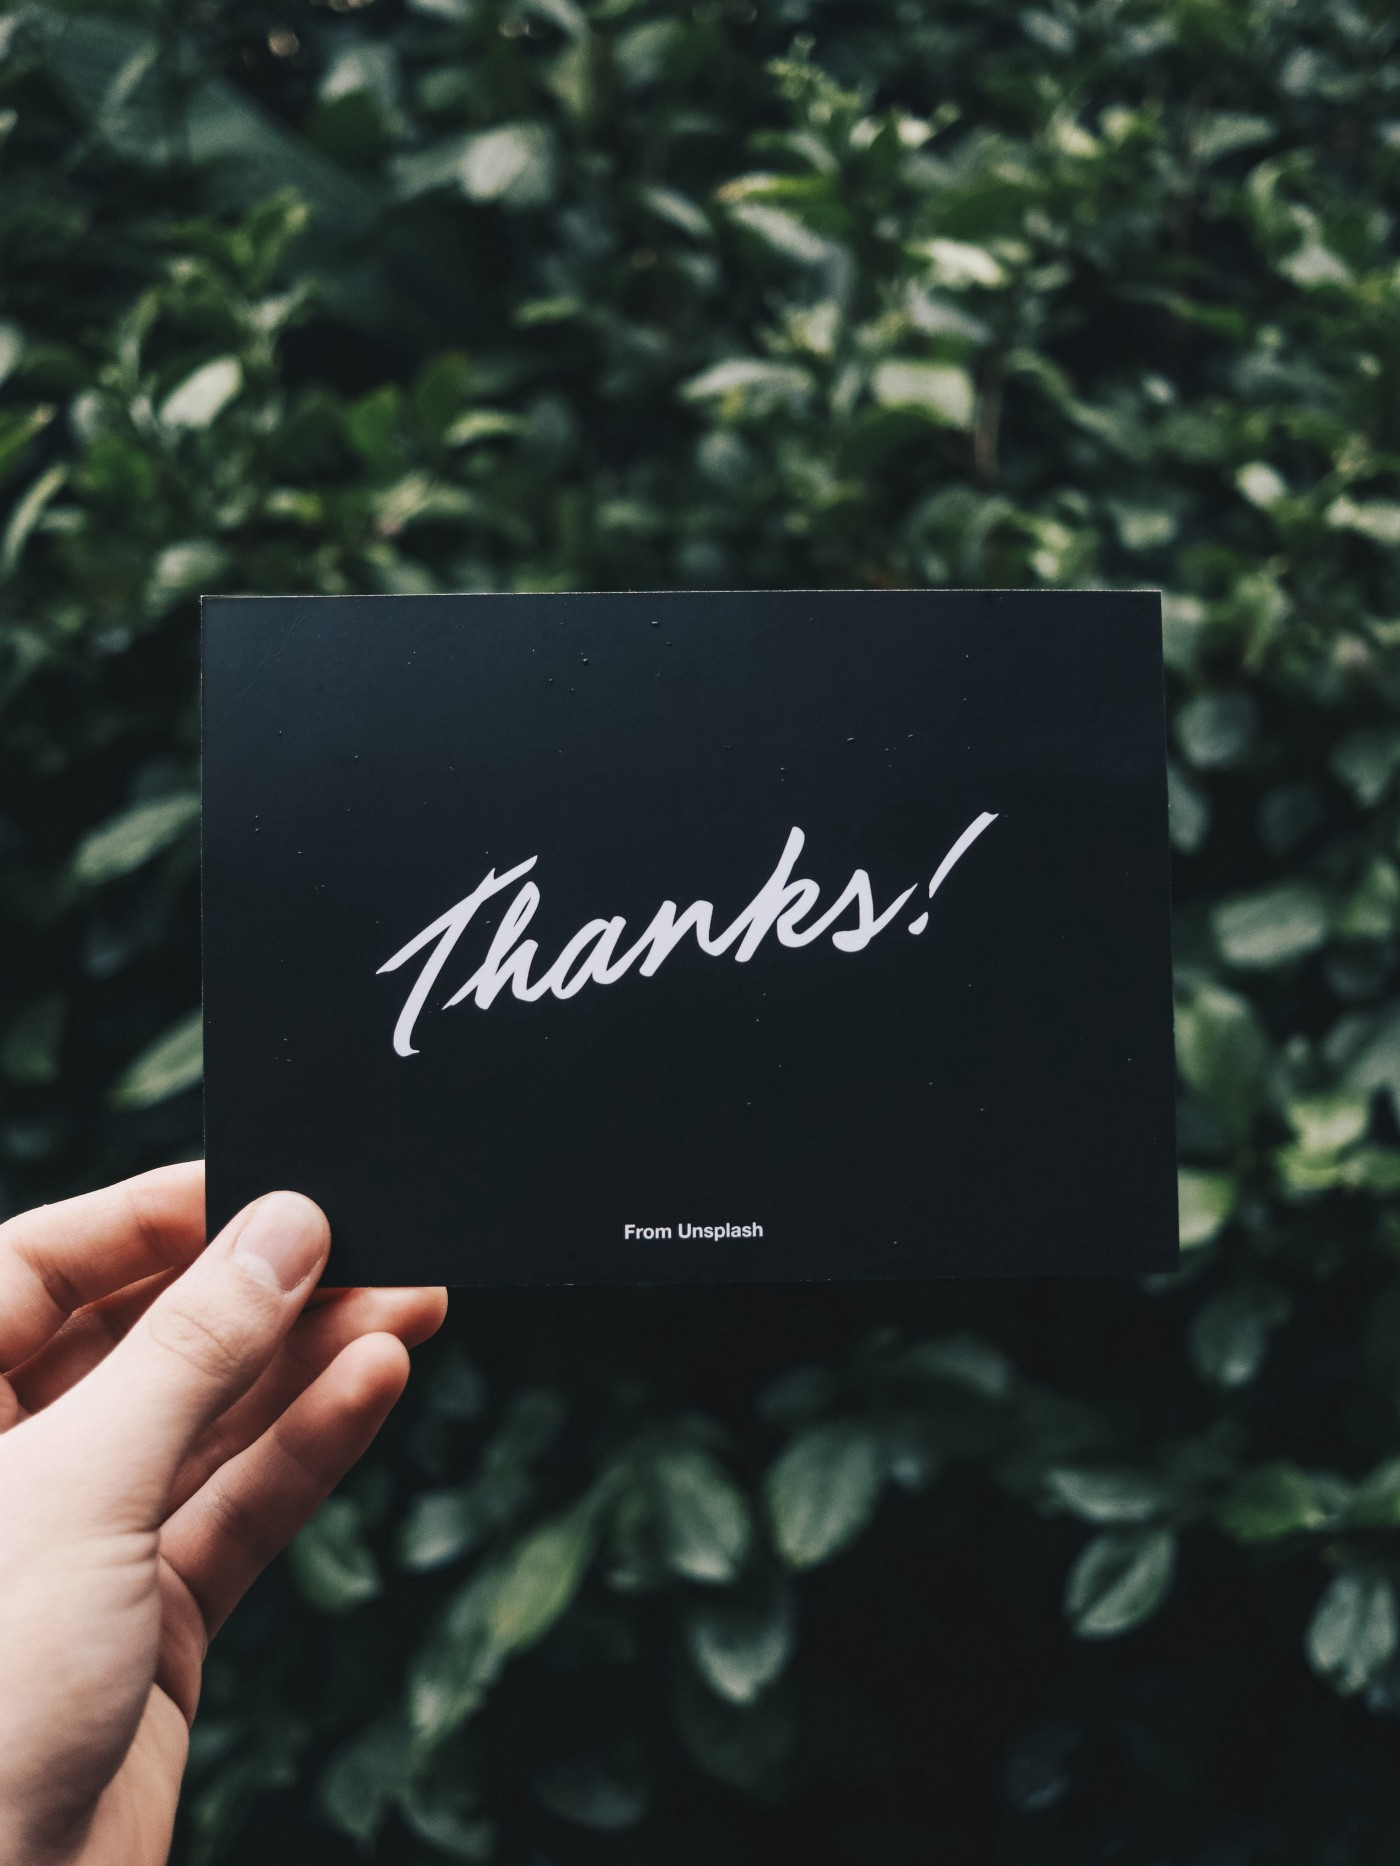 """Left hand holding a black card that says """"Thanks!"""" in a cursive font, and then smaller below says """"From Unsplash."""" Card is held against a green leafy background"""